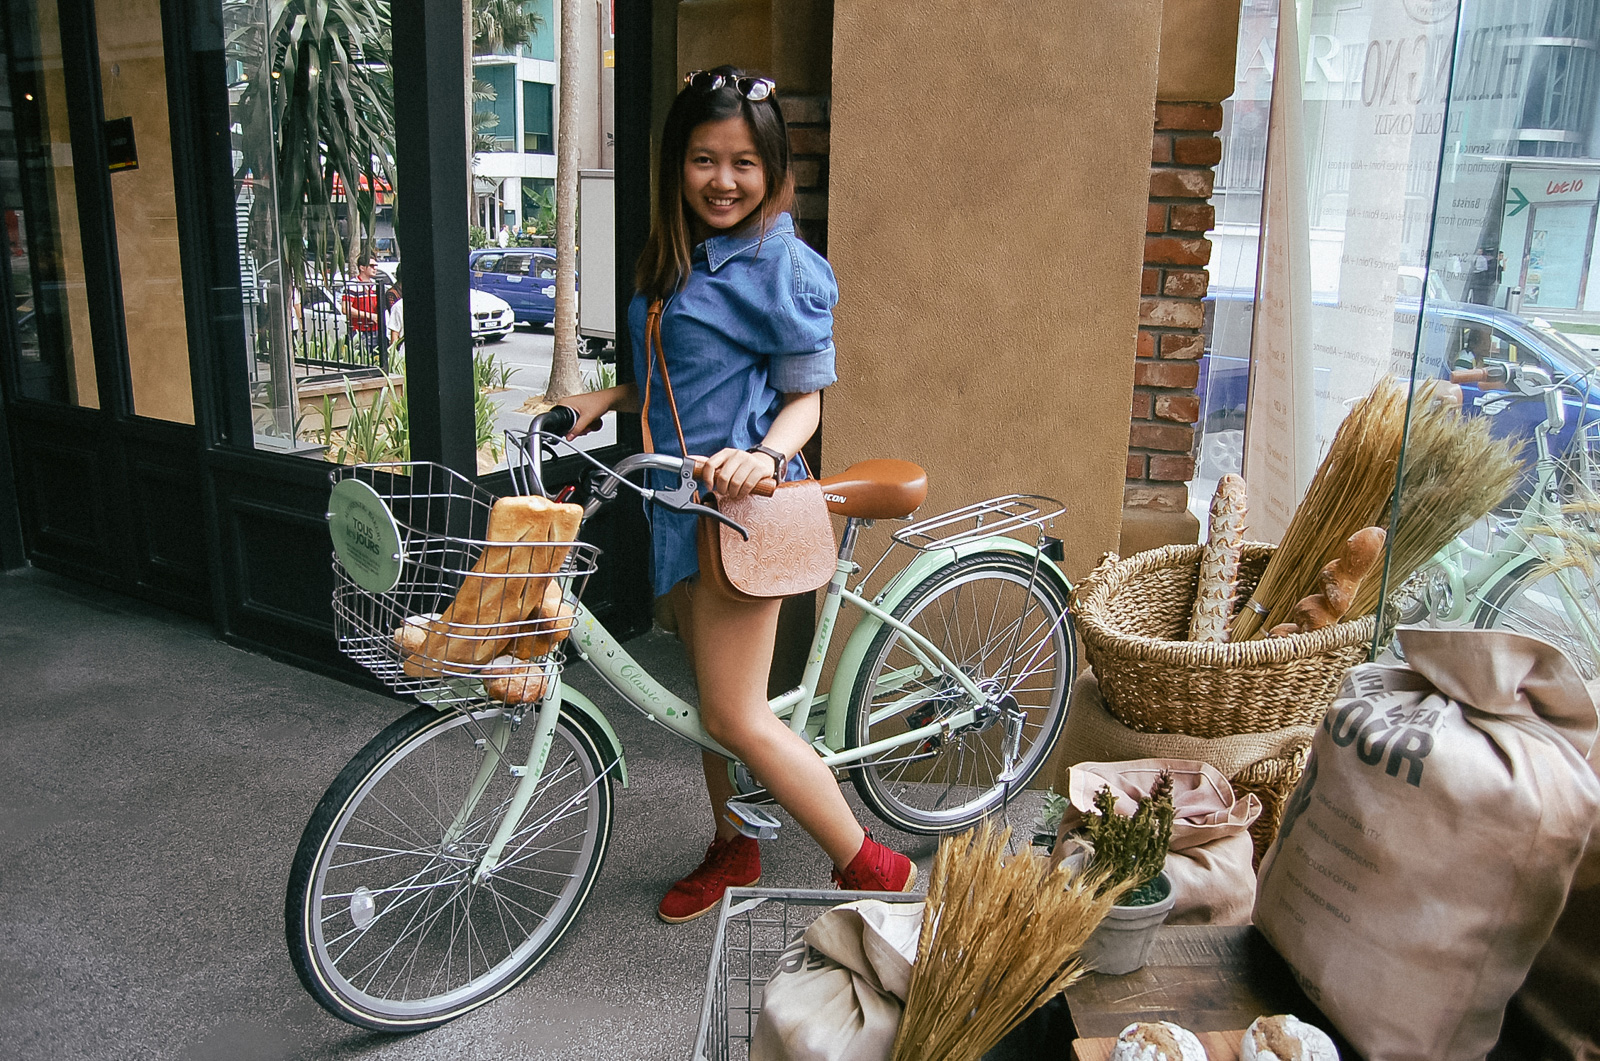 With the bicycle indoors